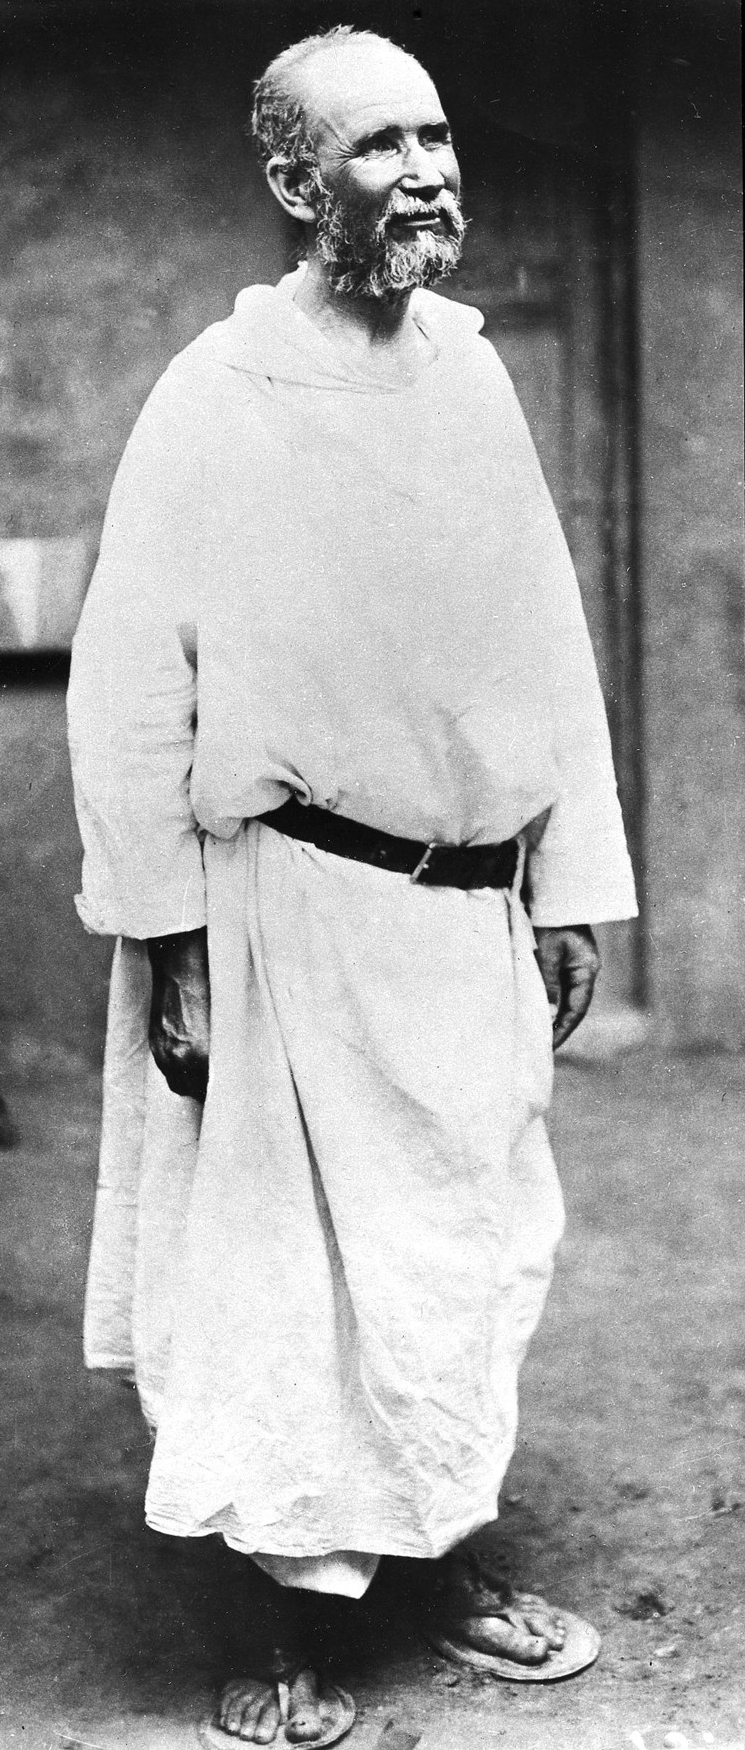 https://upload.wikimedia.org/wikipedia/commons/2/2a/Charles_de_Foucauld_%281858-1916%29_-_Last_living_photo.jpg